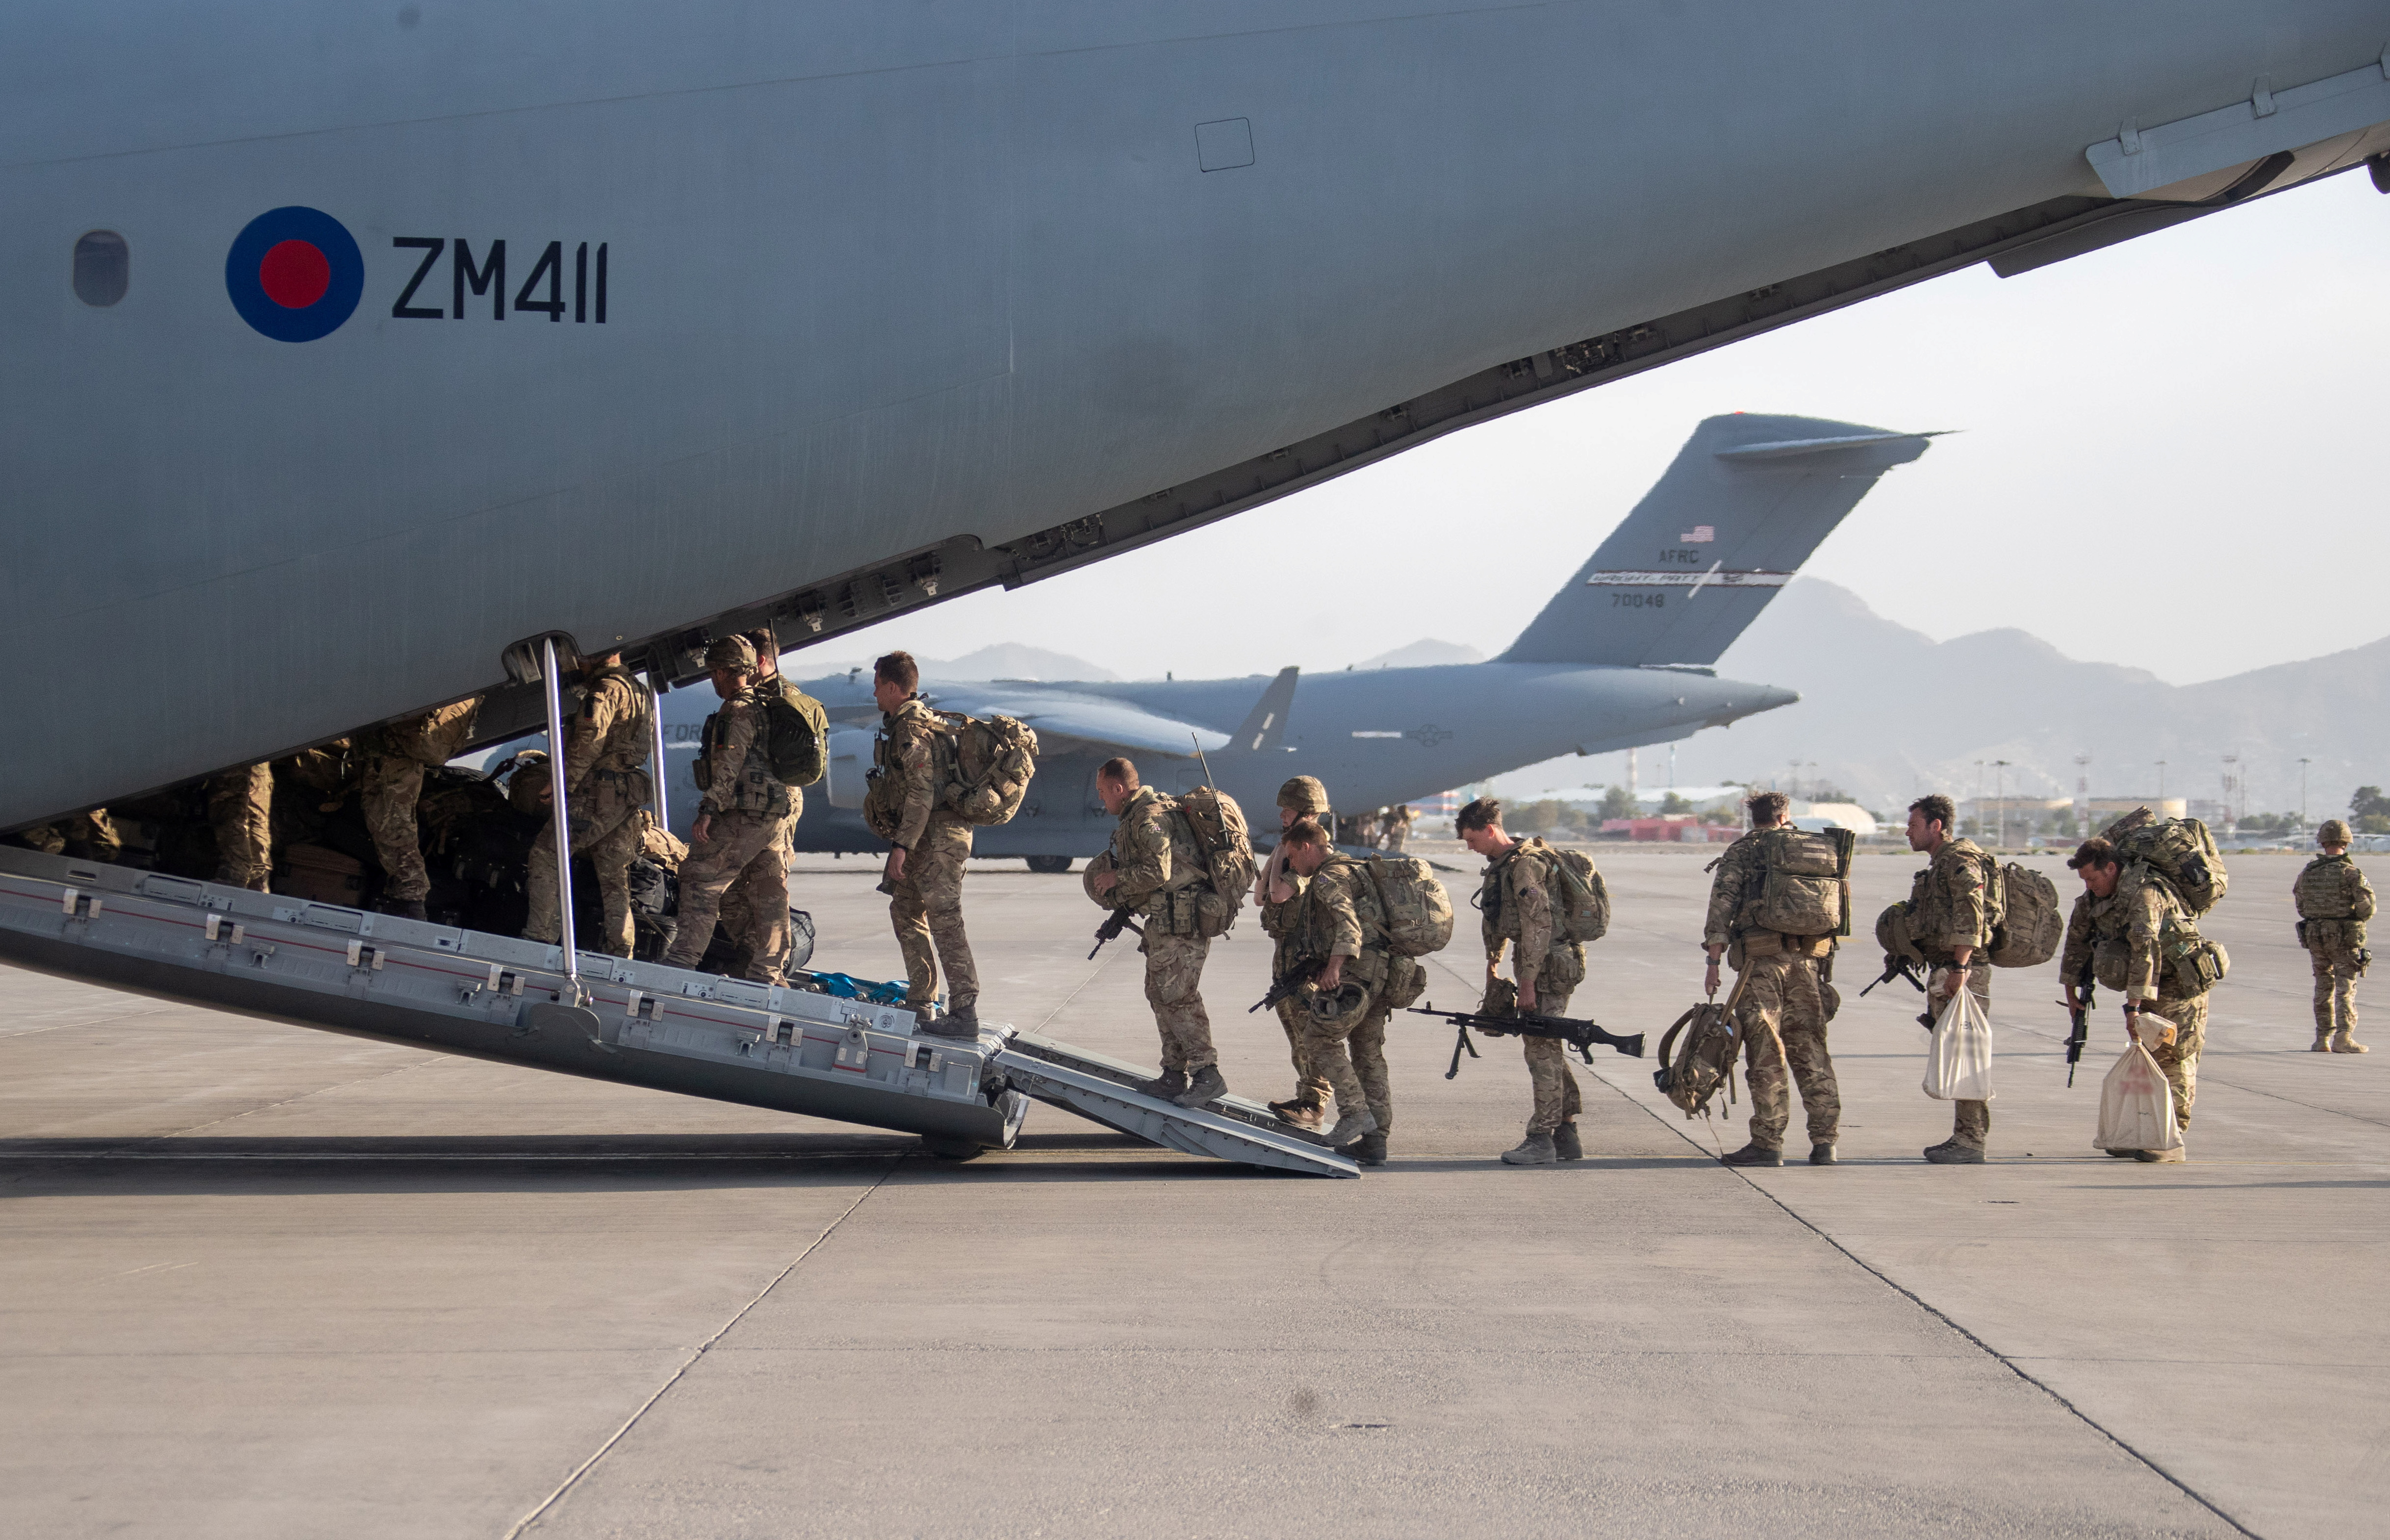 UK military personnel board an A400M aircraft departing Kabul, Afghanistan August 28, 2021.   Jonathan Gifford/UK MOD Crown copyright 2021/Handout via REUTERS